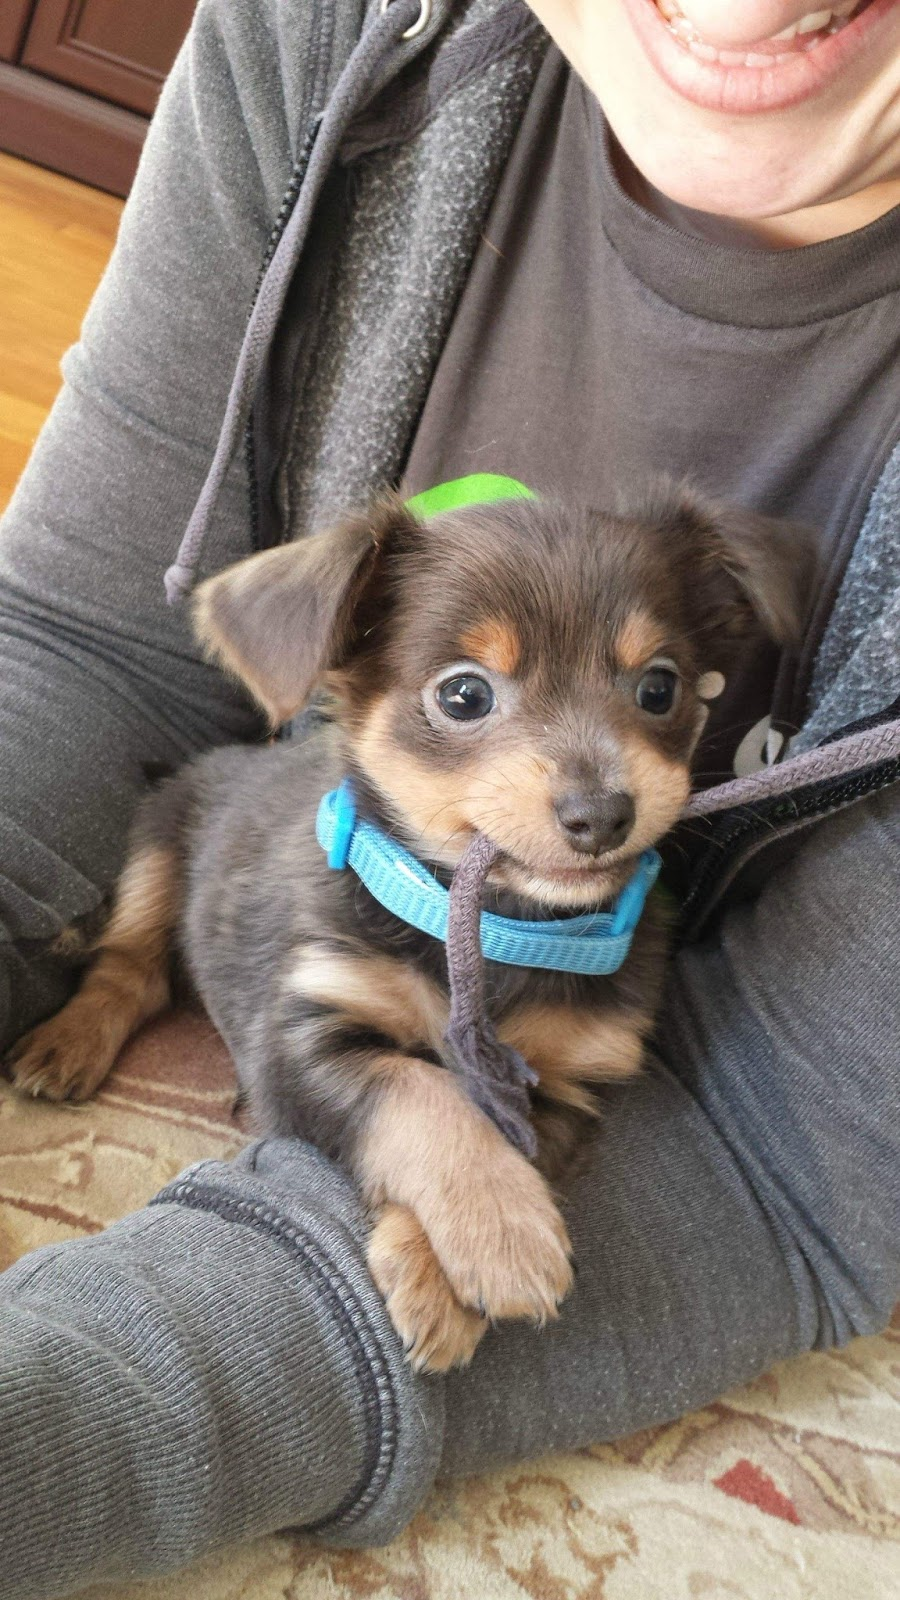 Cute Puppies 17 Pics: Cute Dogs - Part 150 (50 Pics)